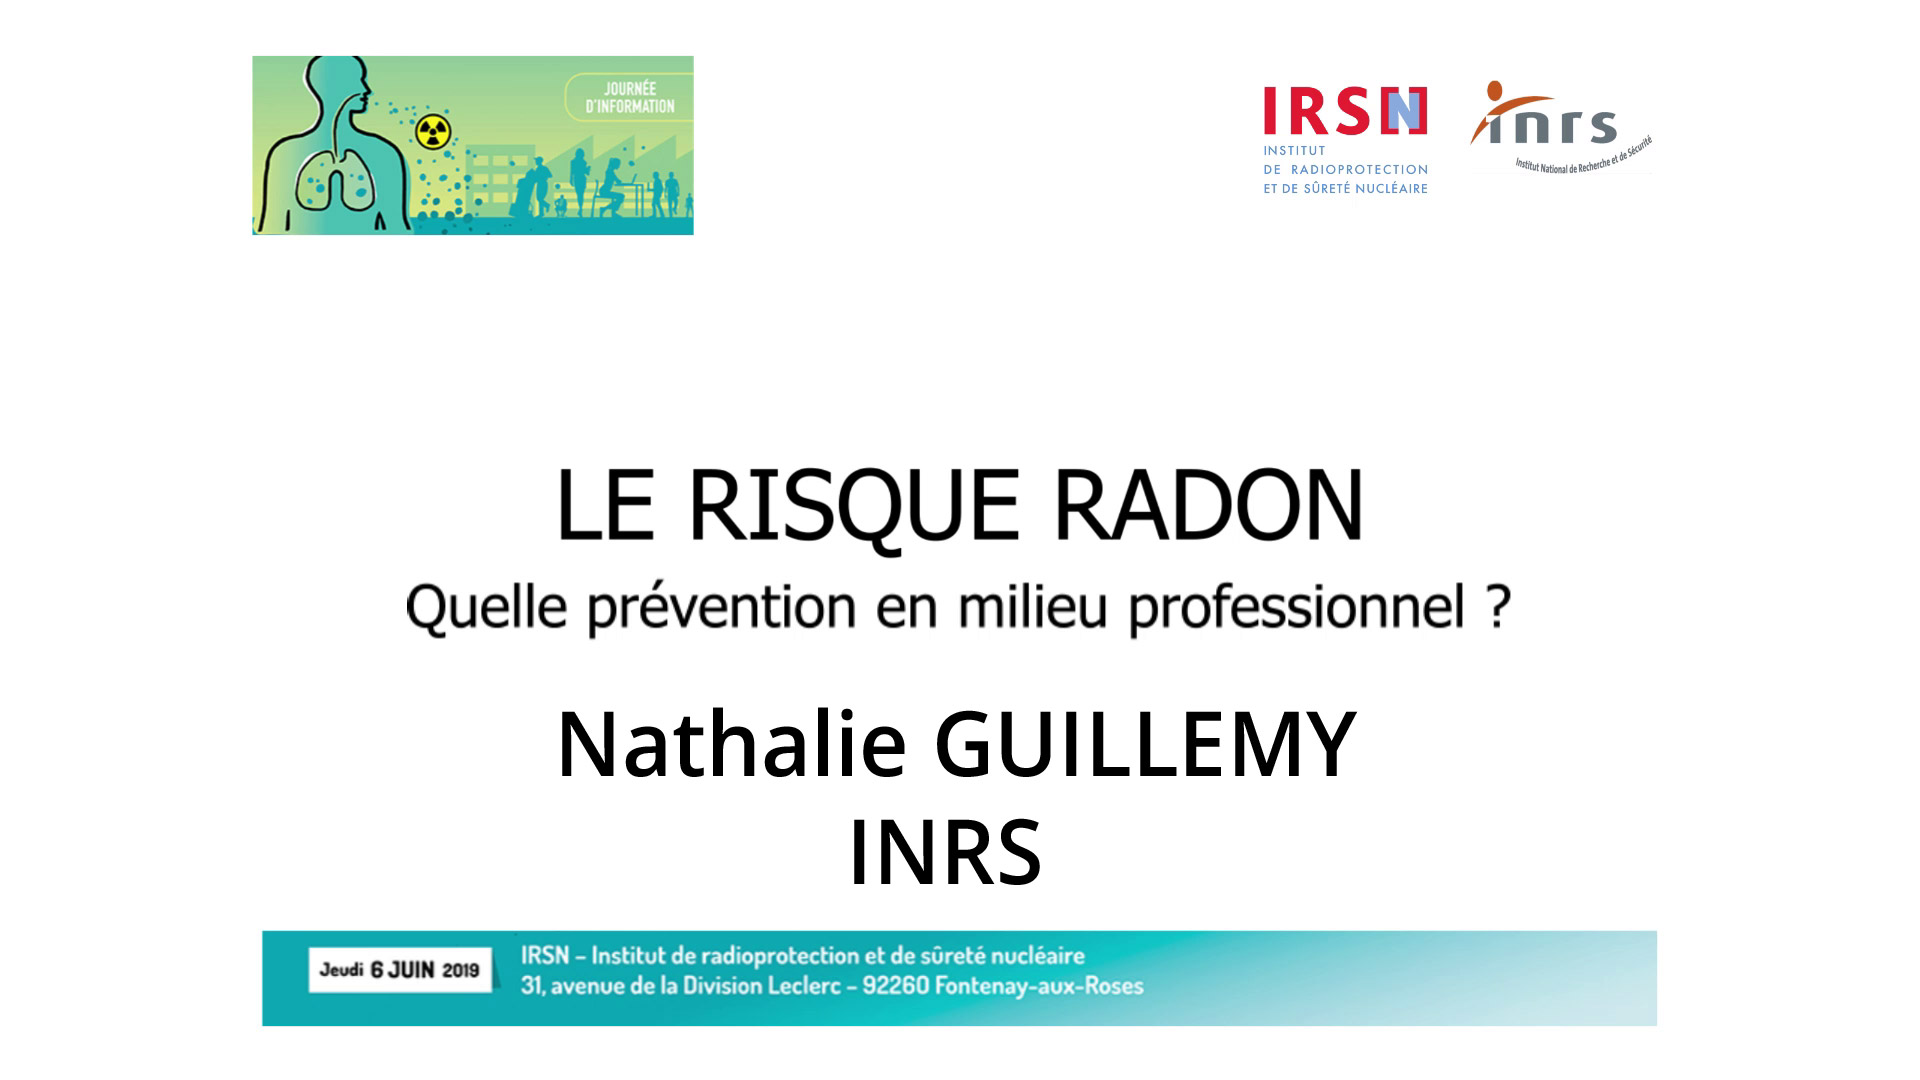 Introduction par Nathalie GUILLEMY, INRS